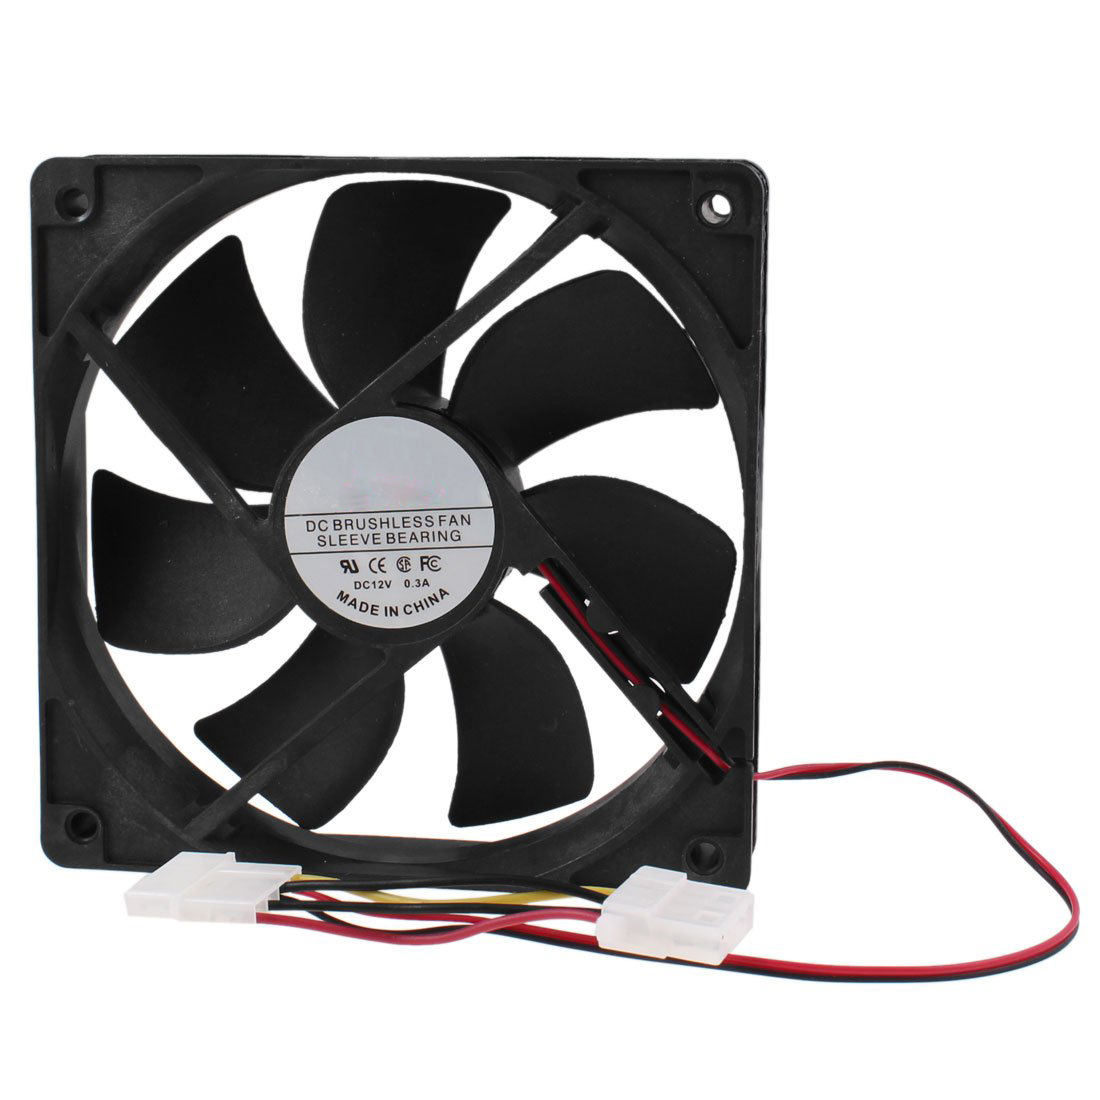 PC Brushless DC Cooling Fan 4 Pin Connector 7 Blades 12V 12cm 120mm delta 12038 fhb1248dhe 12cm 120mm dc 48v 1 54a inverter fan violence strong wind cooling fan